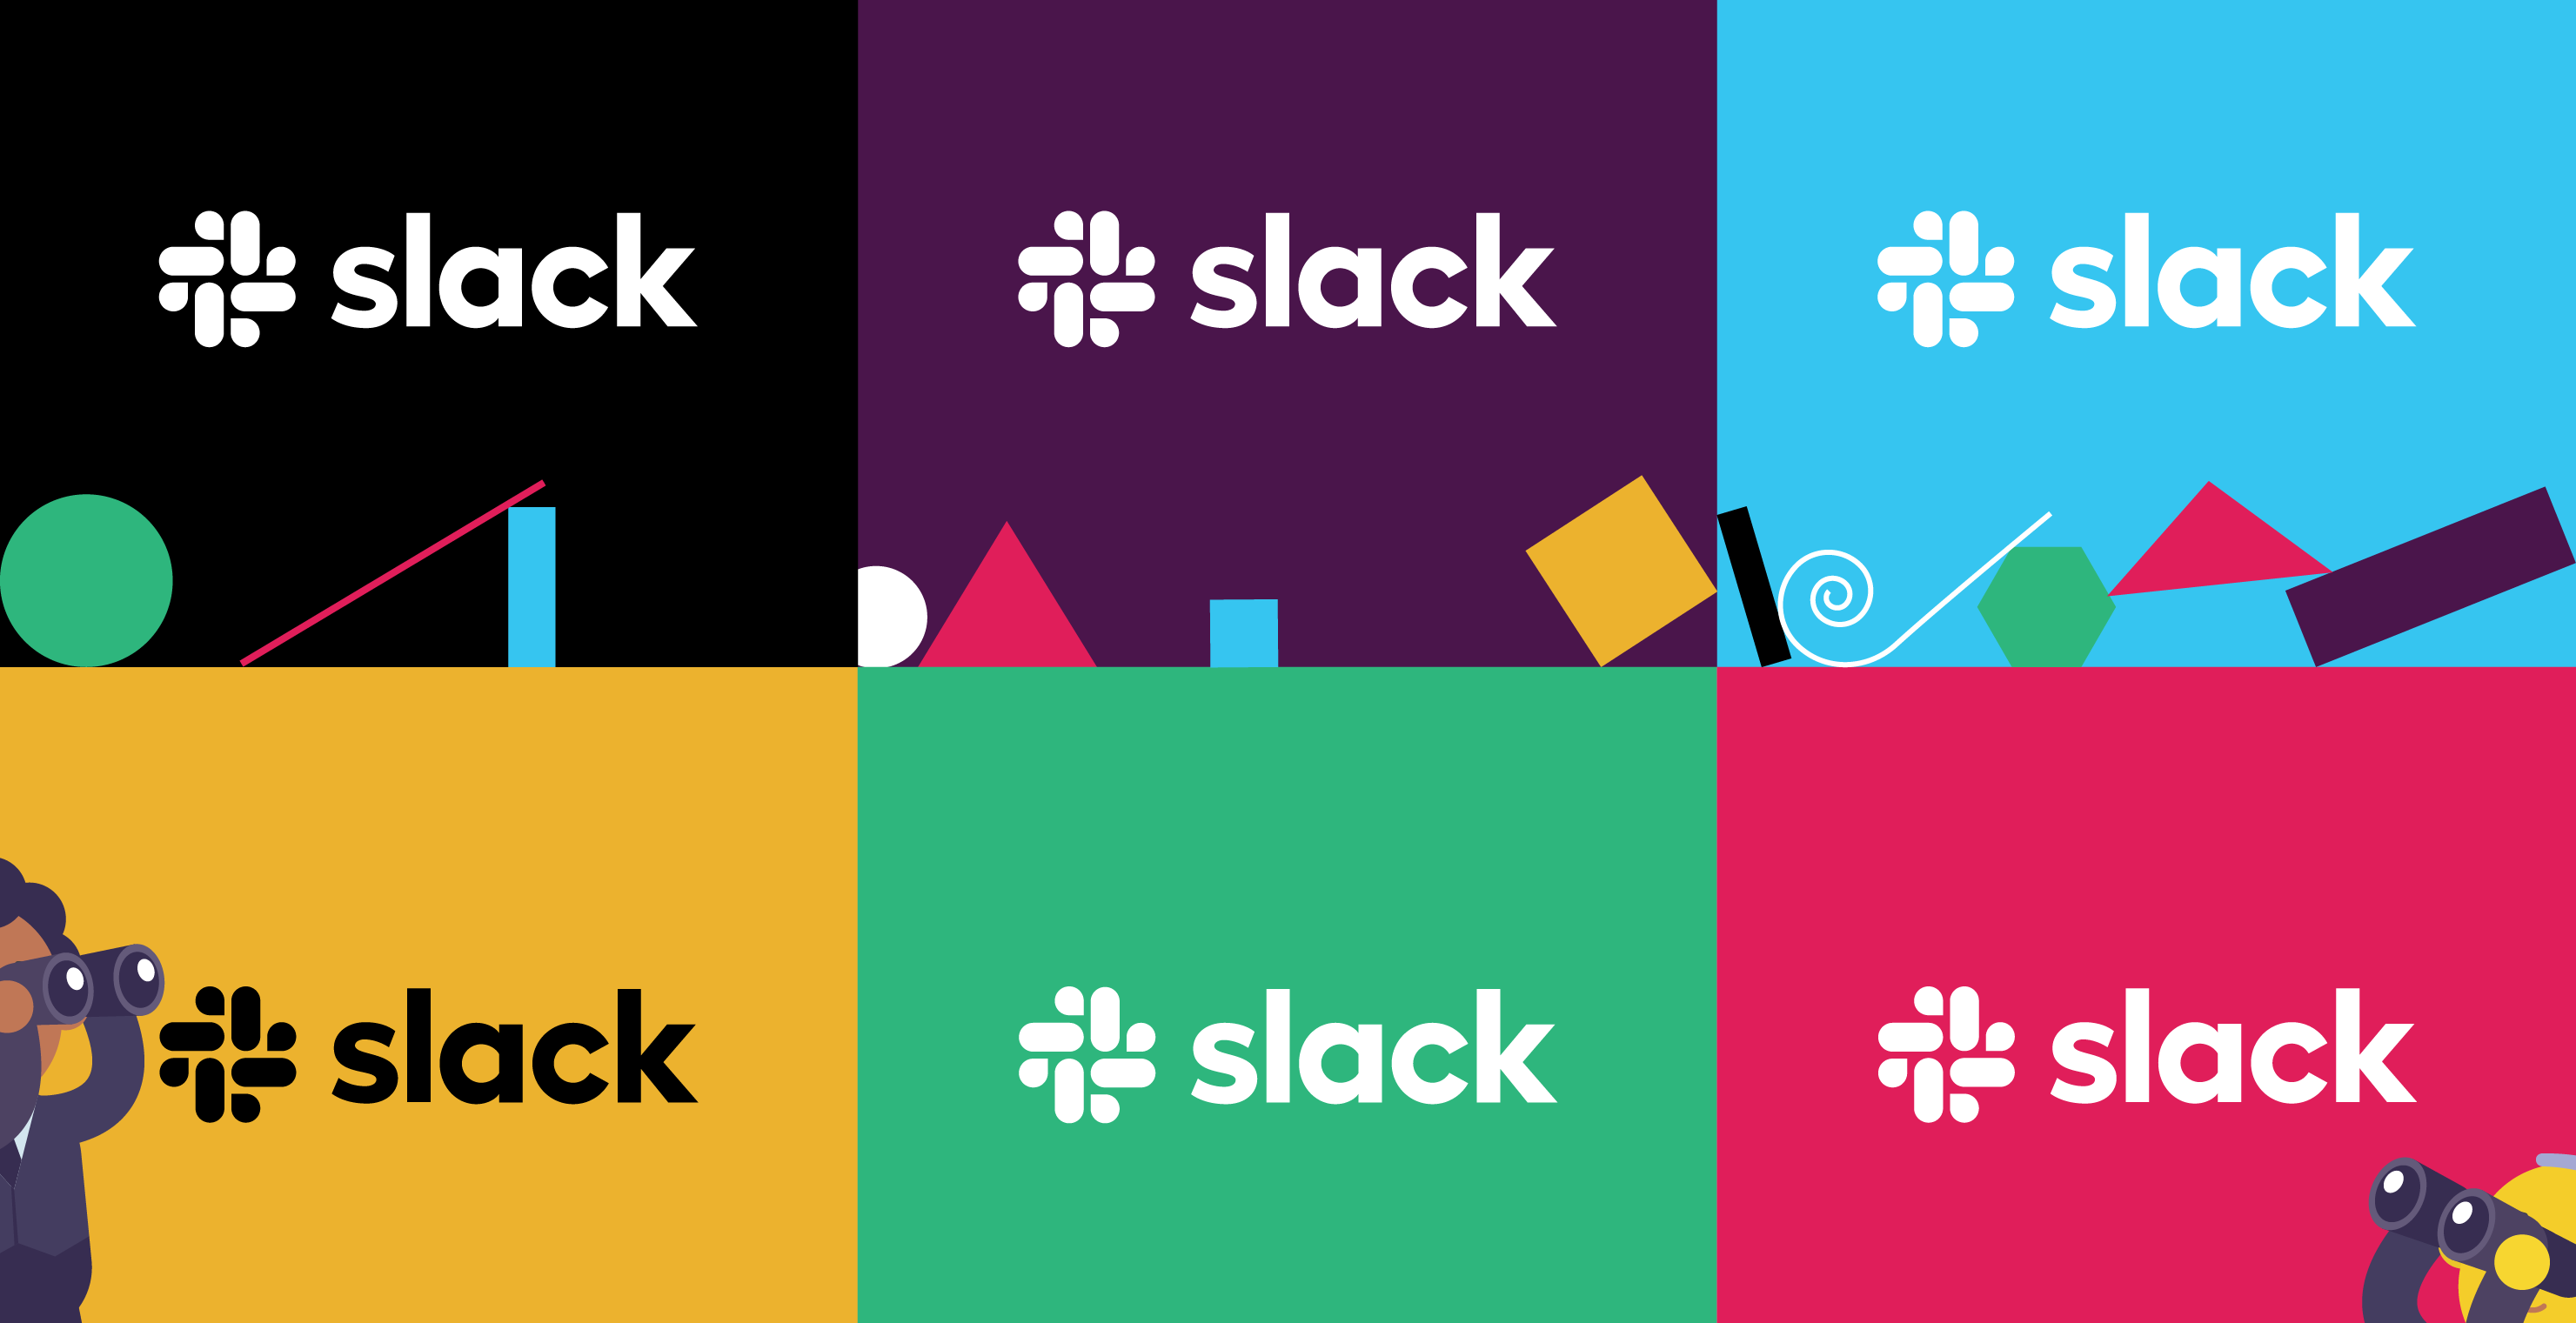 The PC giant Microsoft has banned the use of Slack for its employees